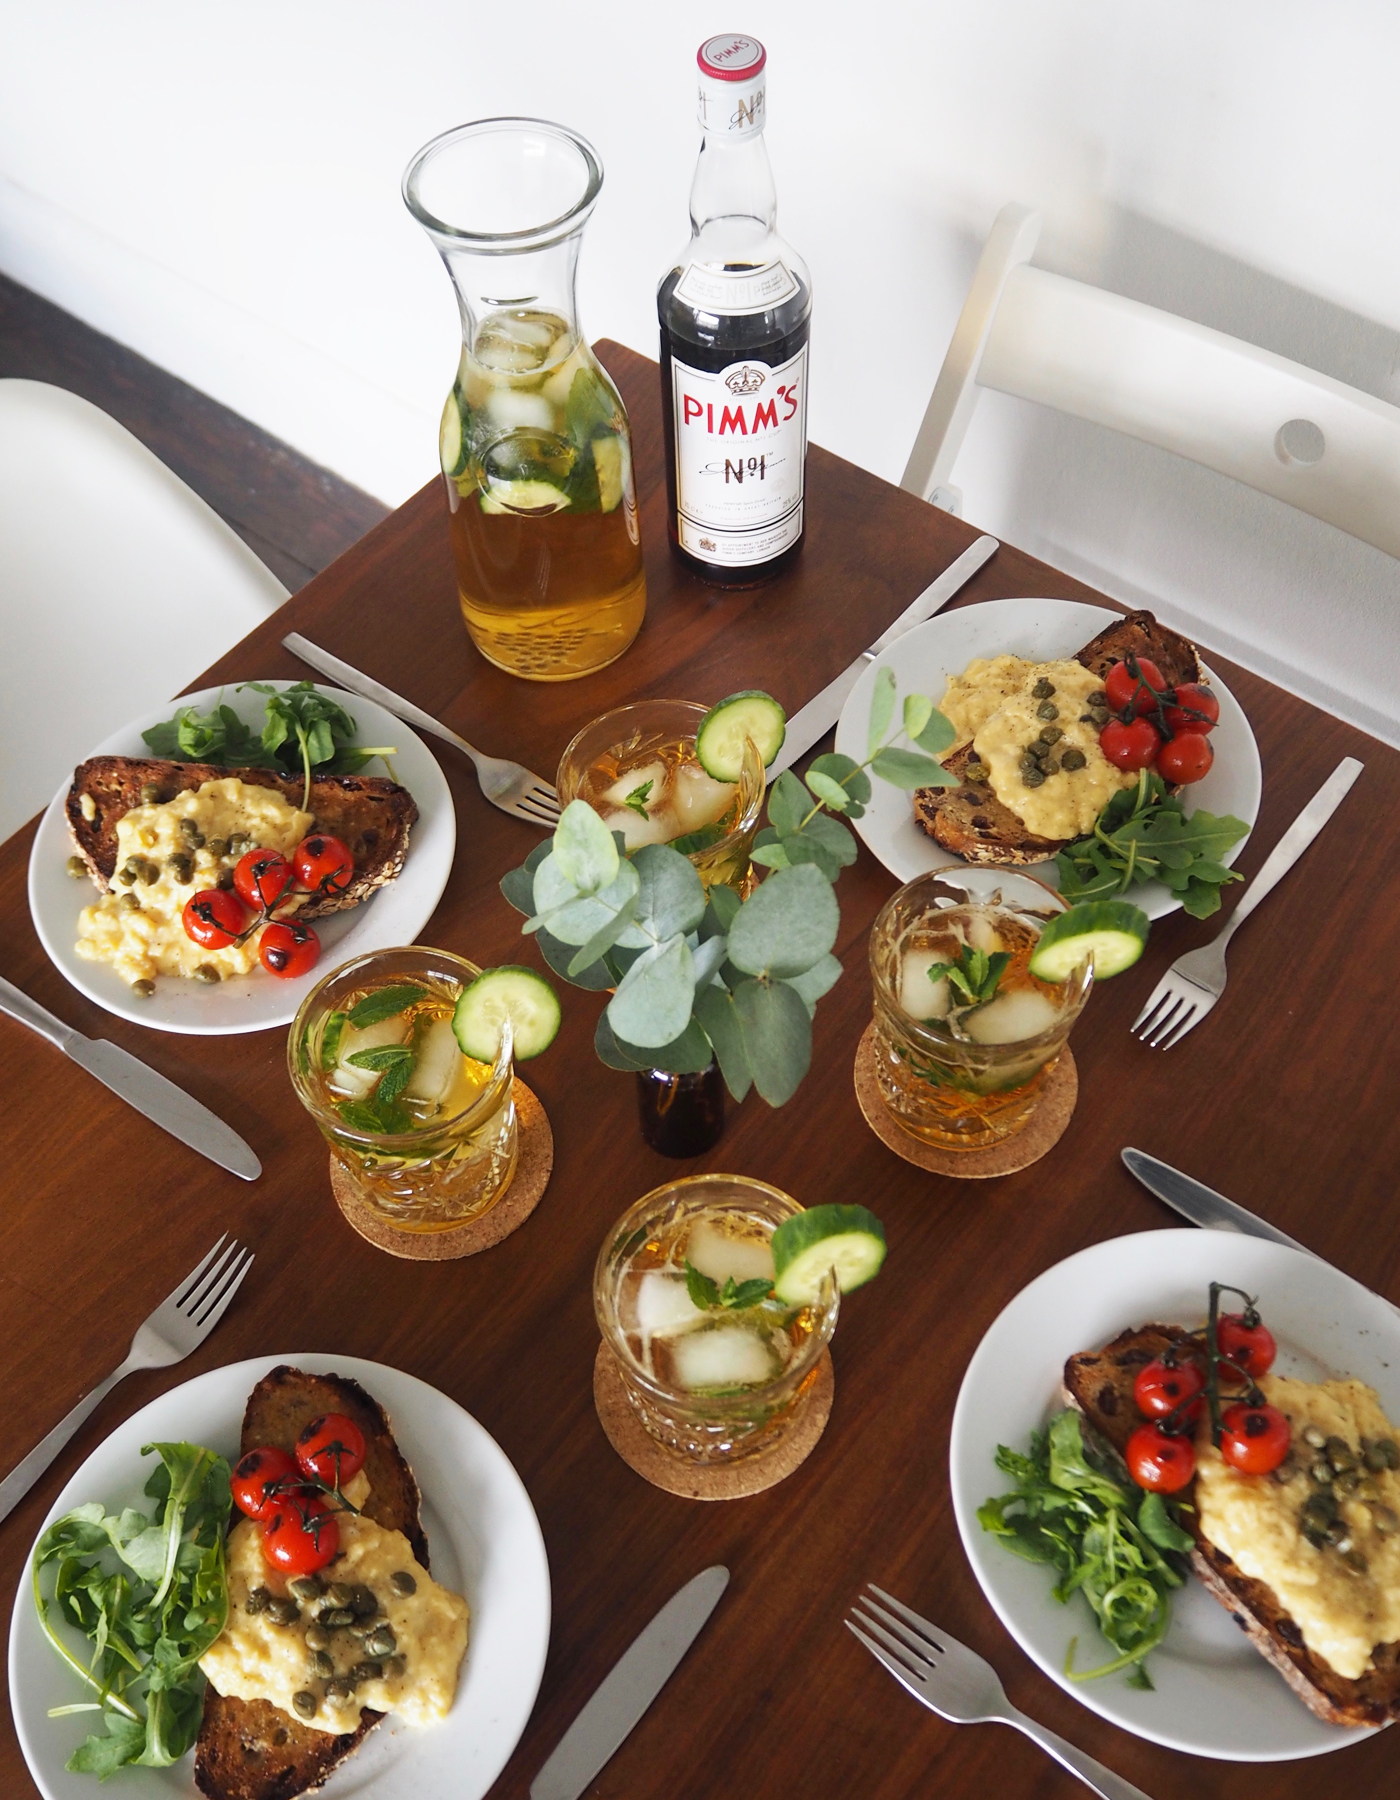 Pimm's gin and tonic